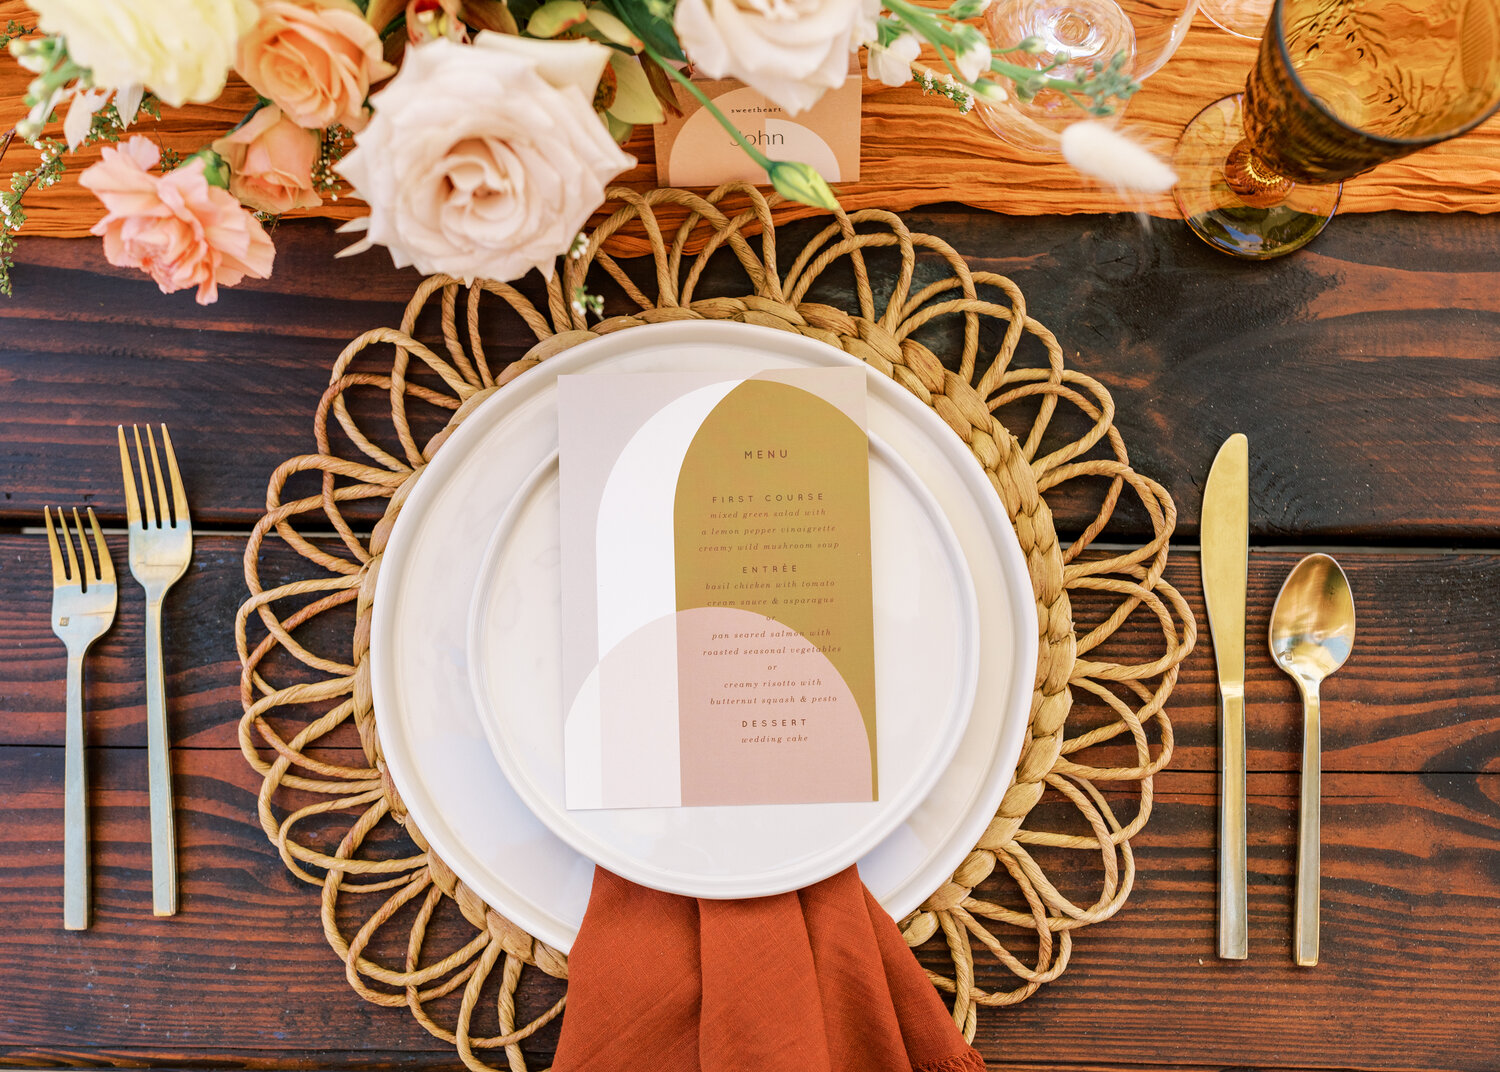 www.santabarbarawedding.com   Events by Fran   Ever After Petite Venue   Kendall Ann Photo   Tangled Lotus   Amigo Party Rentals   Love and Fromage   Reception Place Setting